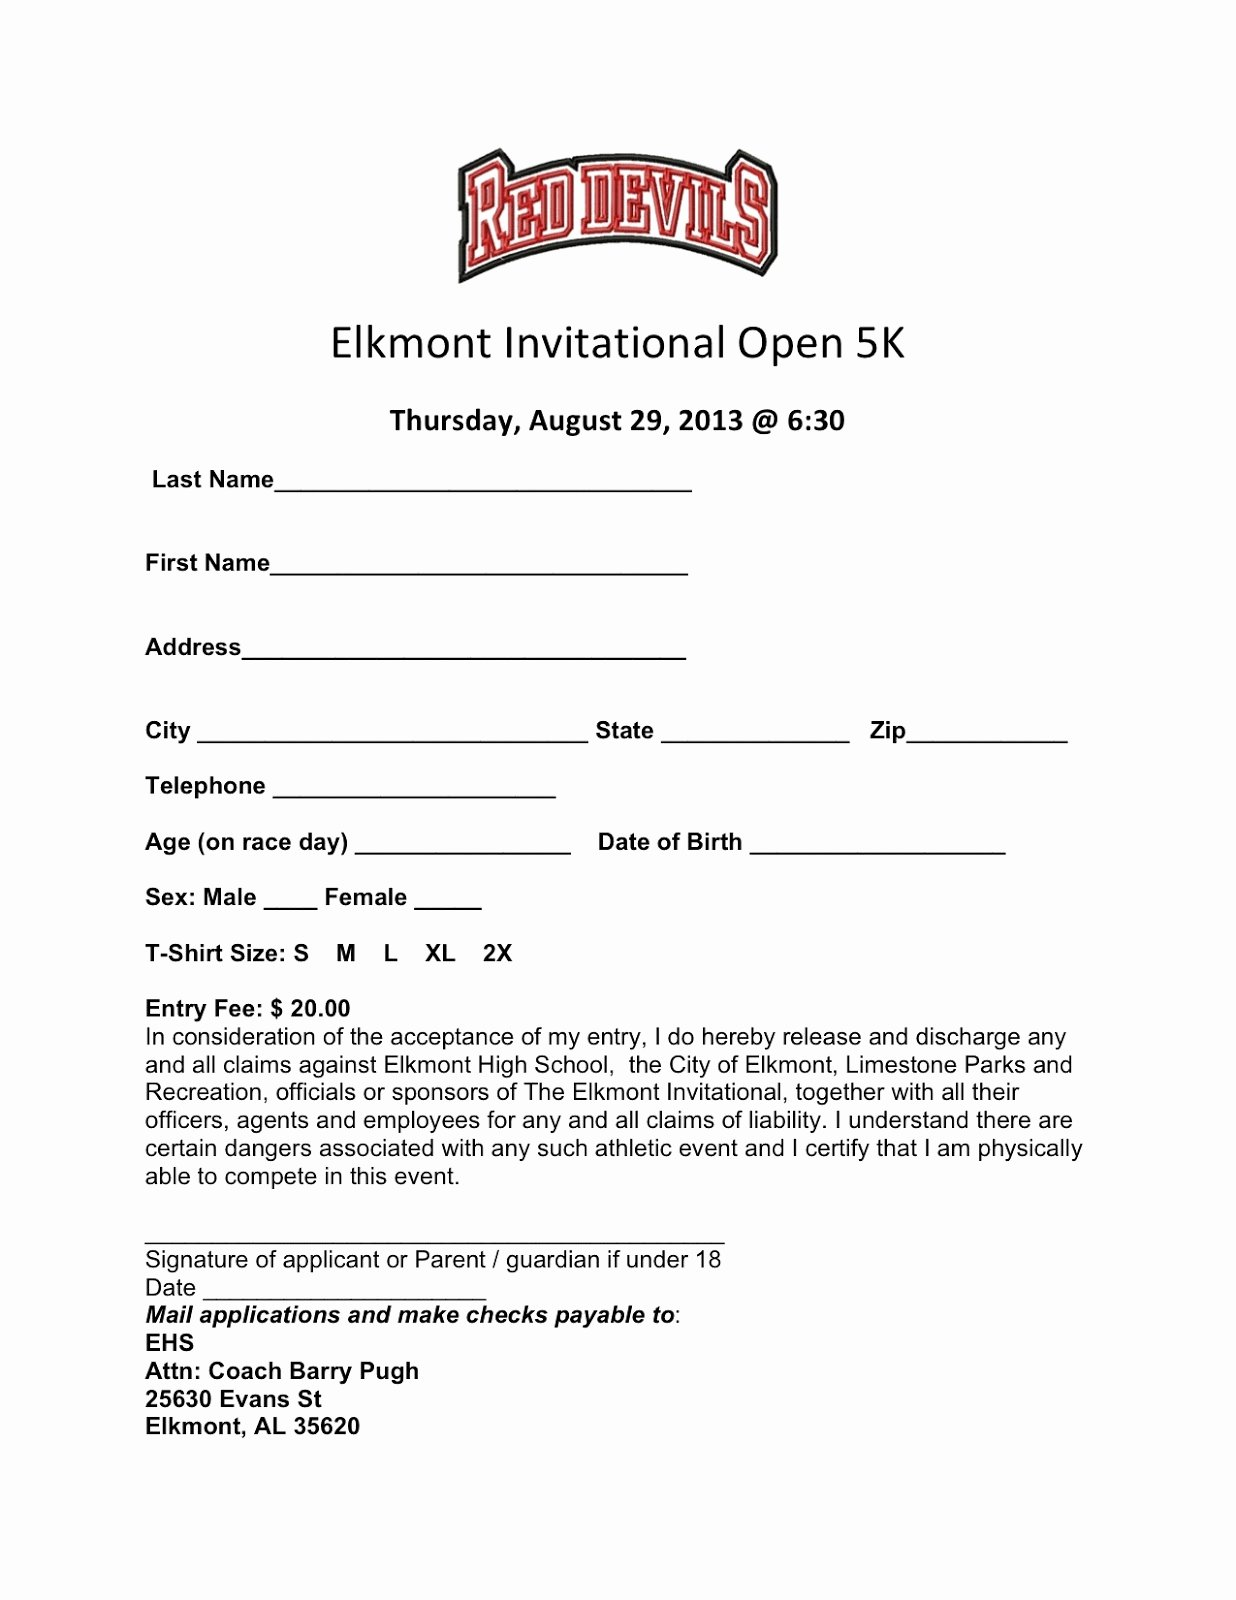 5k Registration form Template New Elkmont Alabama Elkmont Open 5k Run Runners Unite